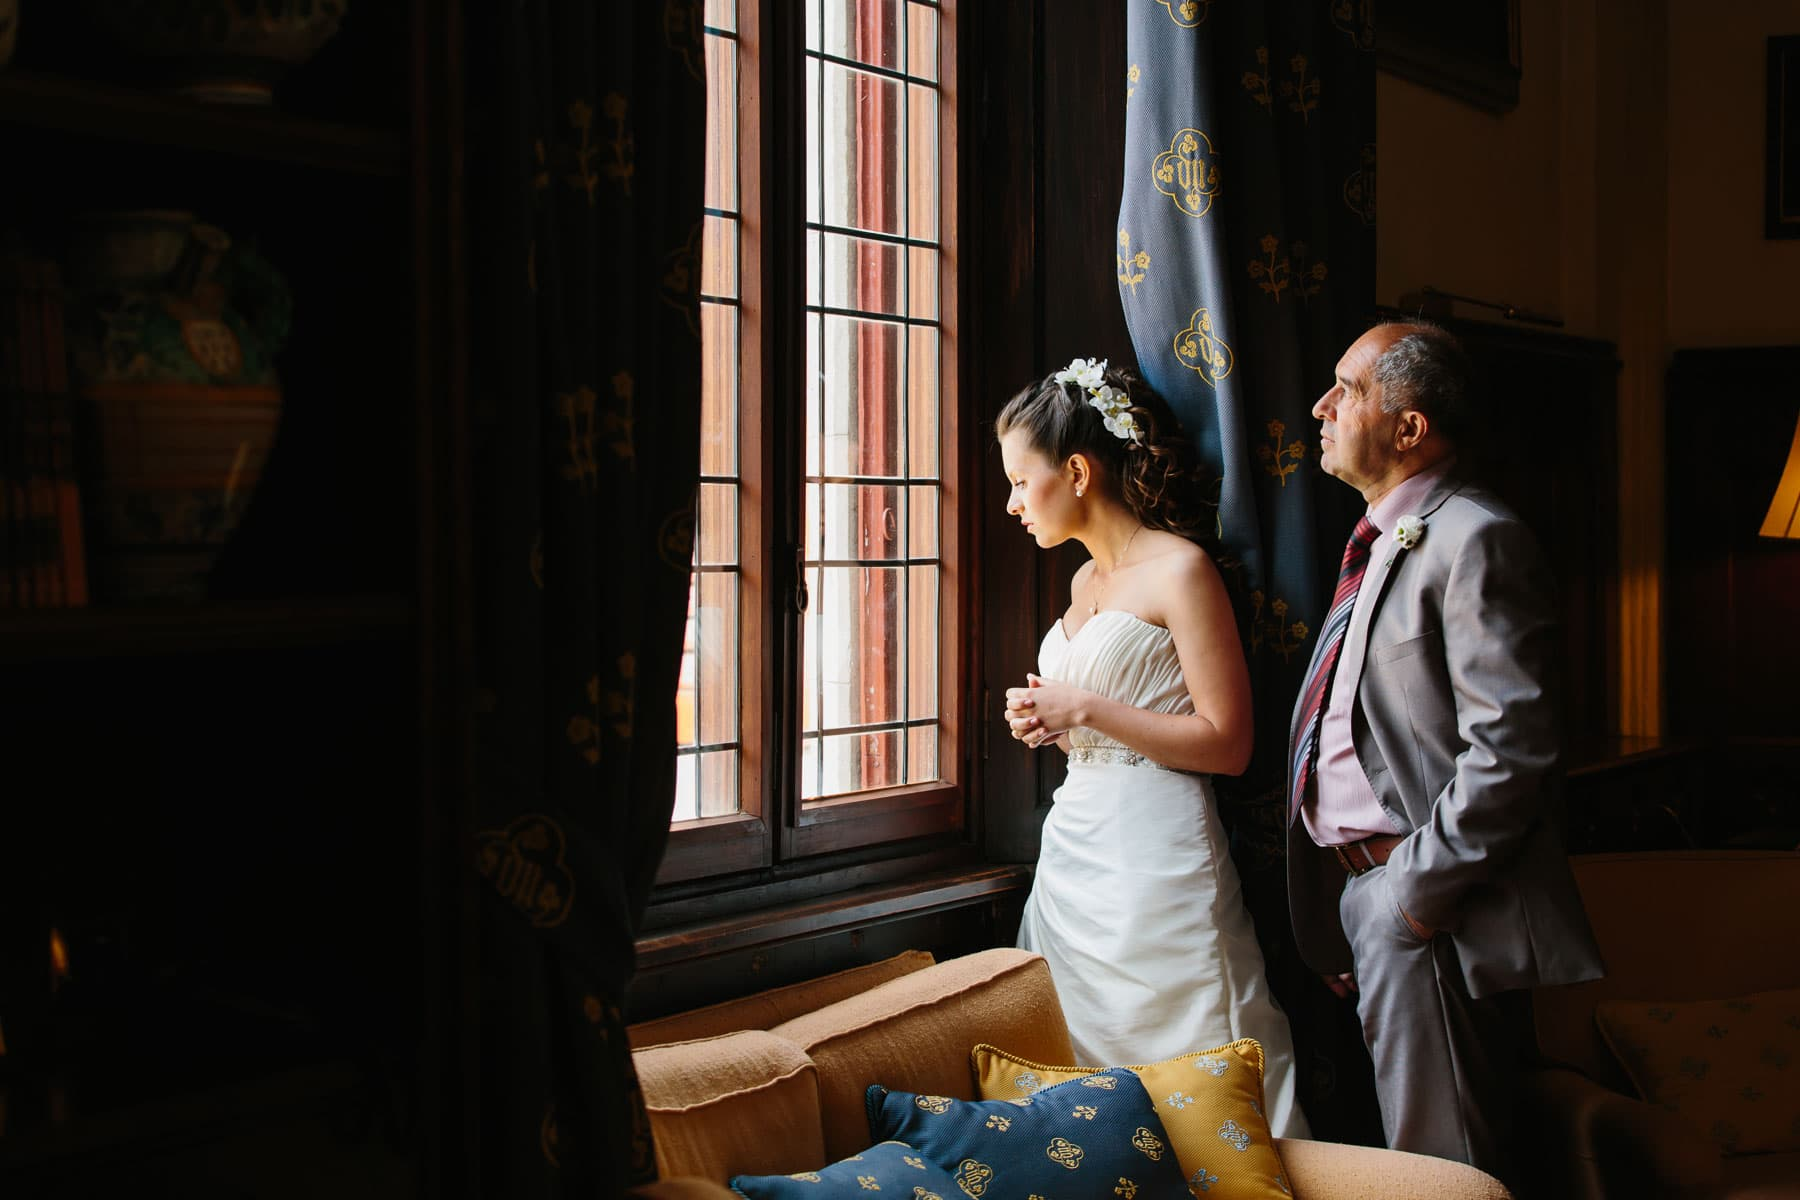 Window light illuminates the bride and her father as they peer towards the courtyard in this Italian destination wedding in Castello Dal Pozzo.